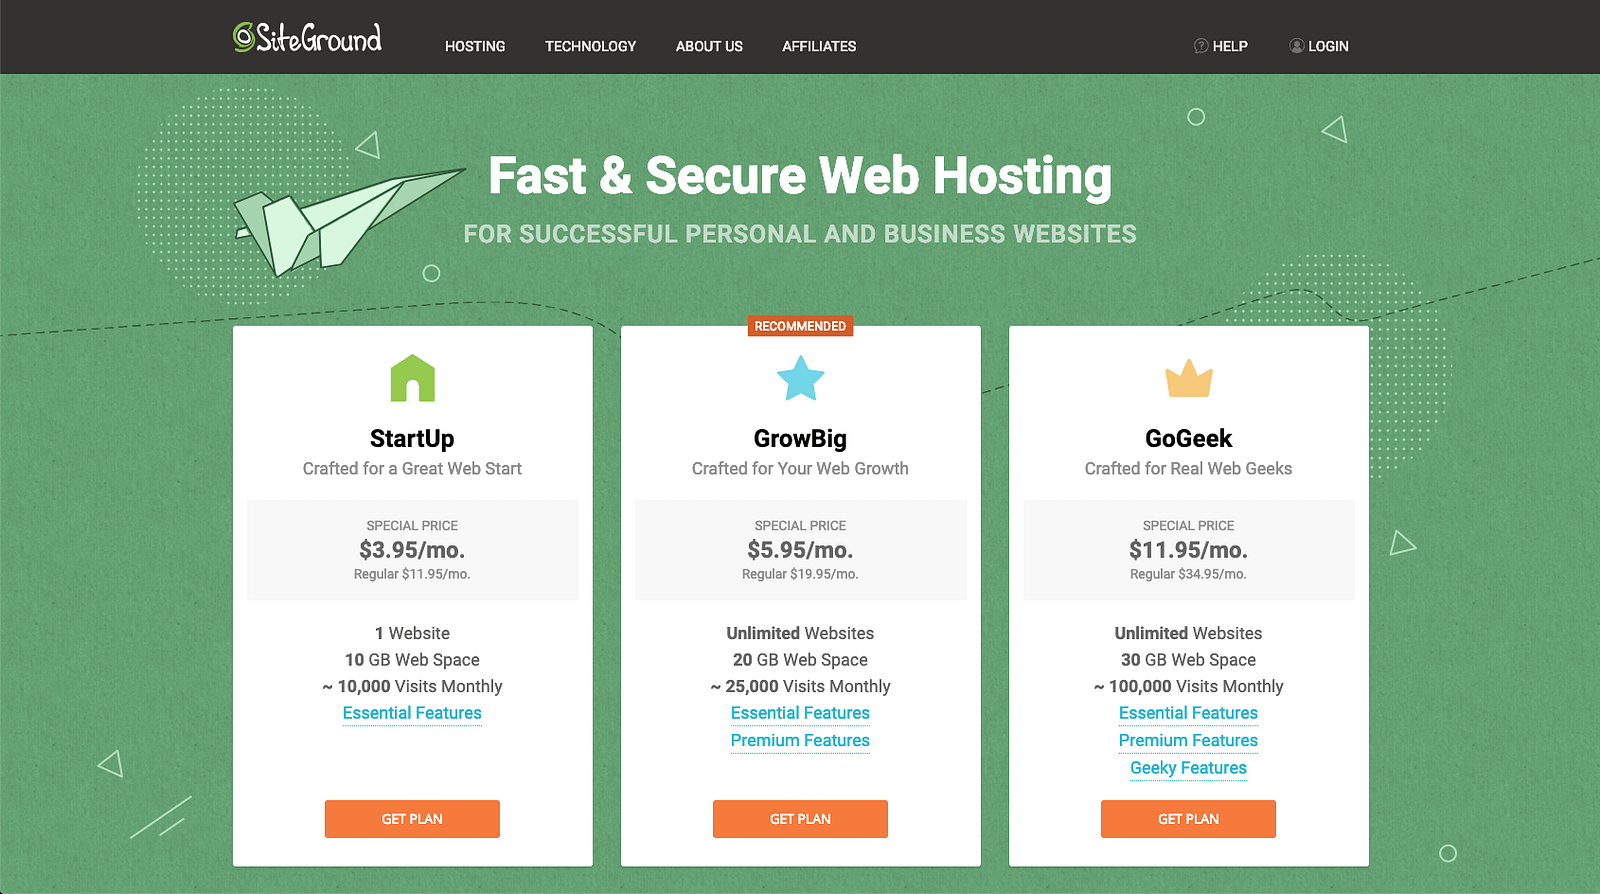 SiteGround hosting offers three shared hosting plans for WordPress users, StartUp, Growbig, and GoGeek. I suggest you choose the GrowBig or the GoGeek plan for maximum benefits and performance.